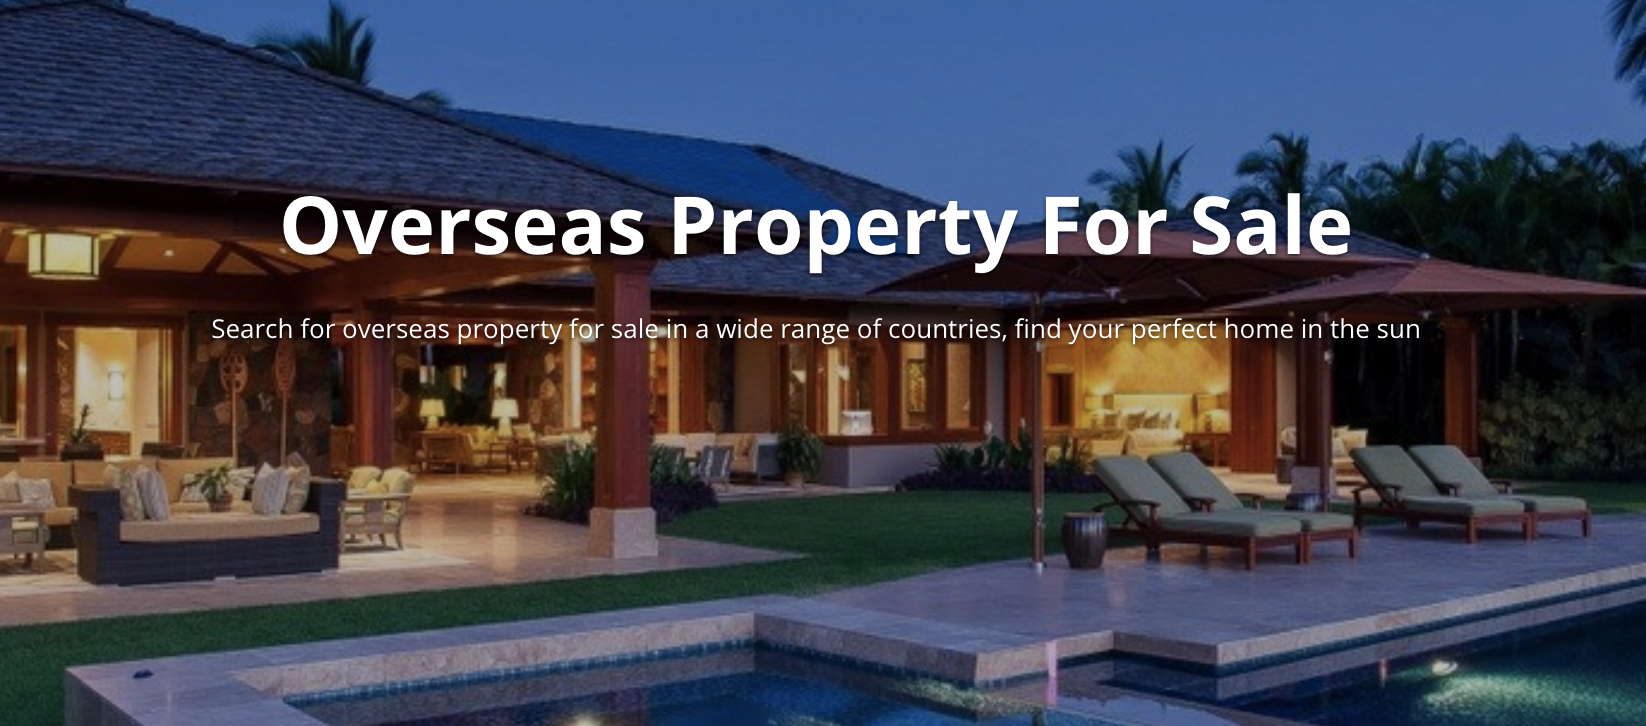 OverseasProperty.Org